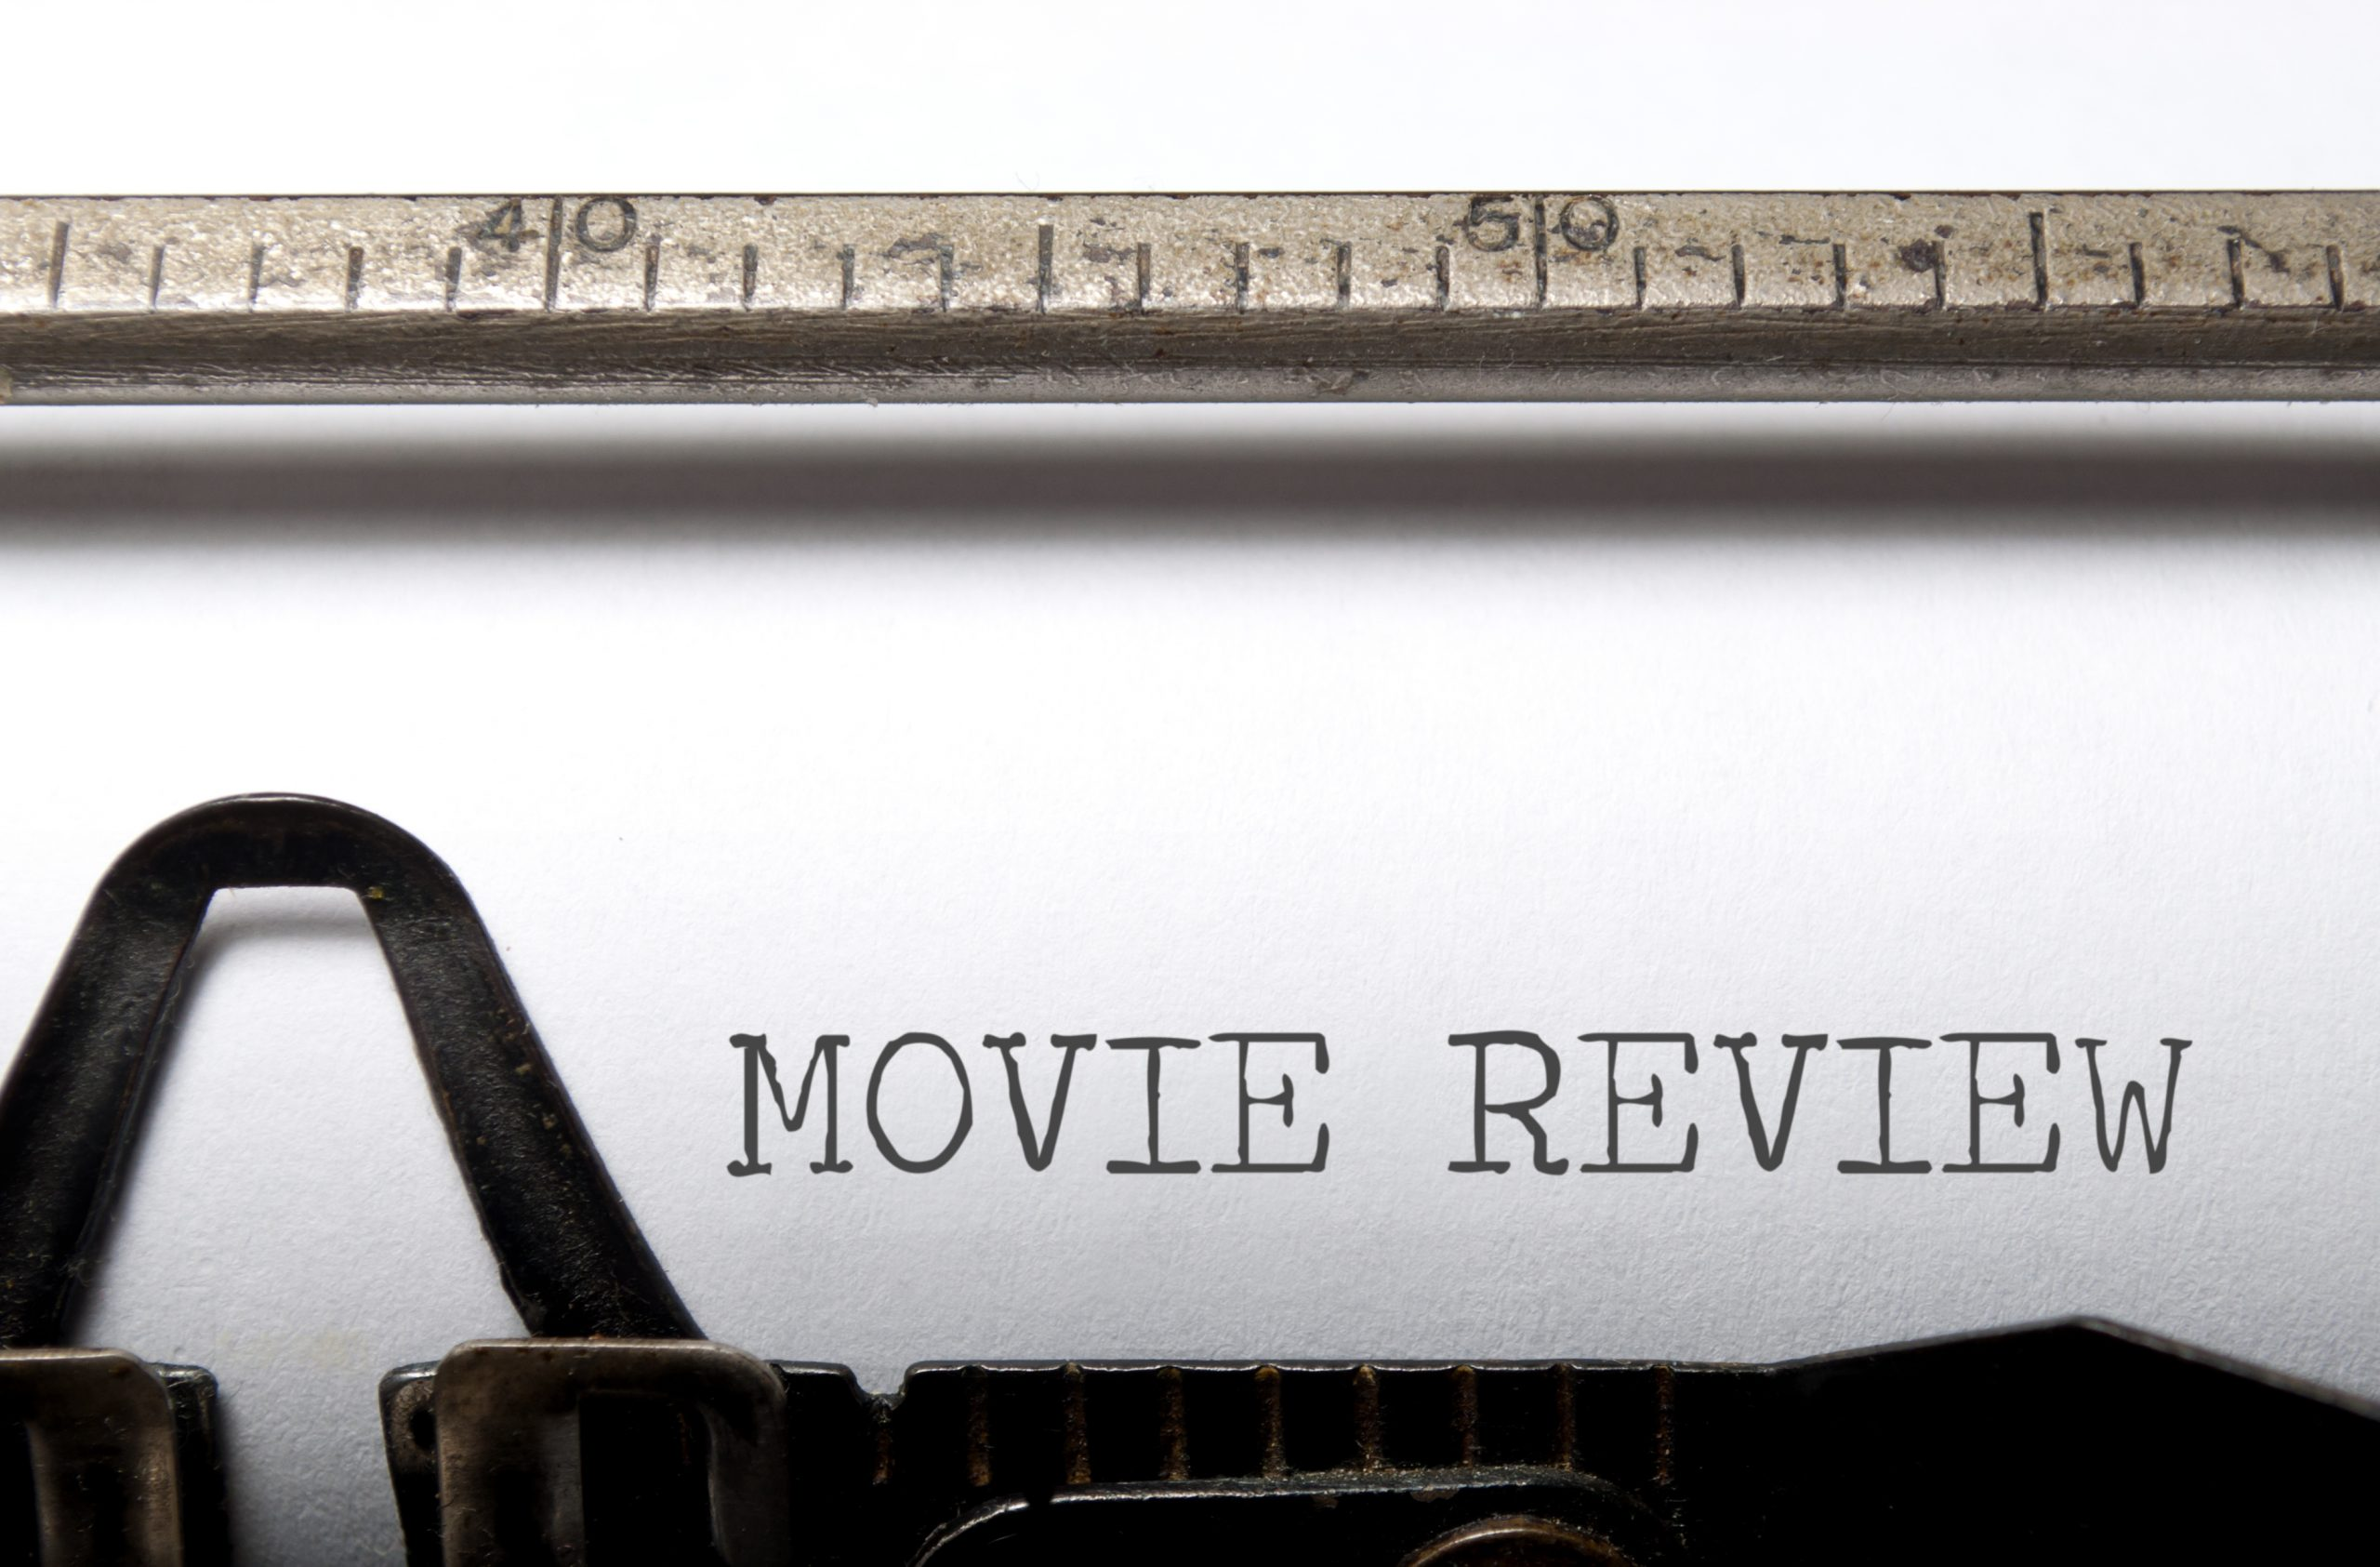 Movie review assignment help provider